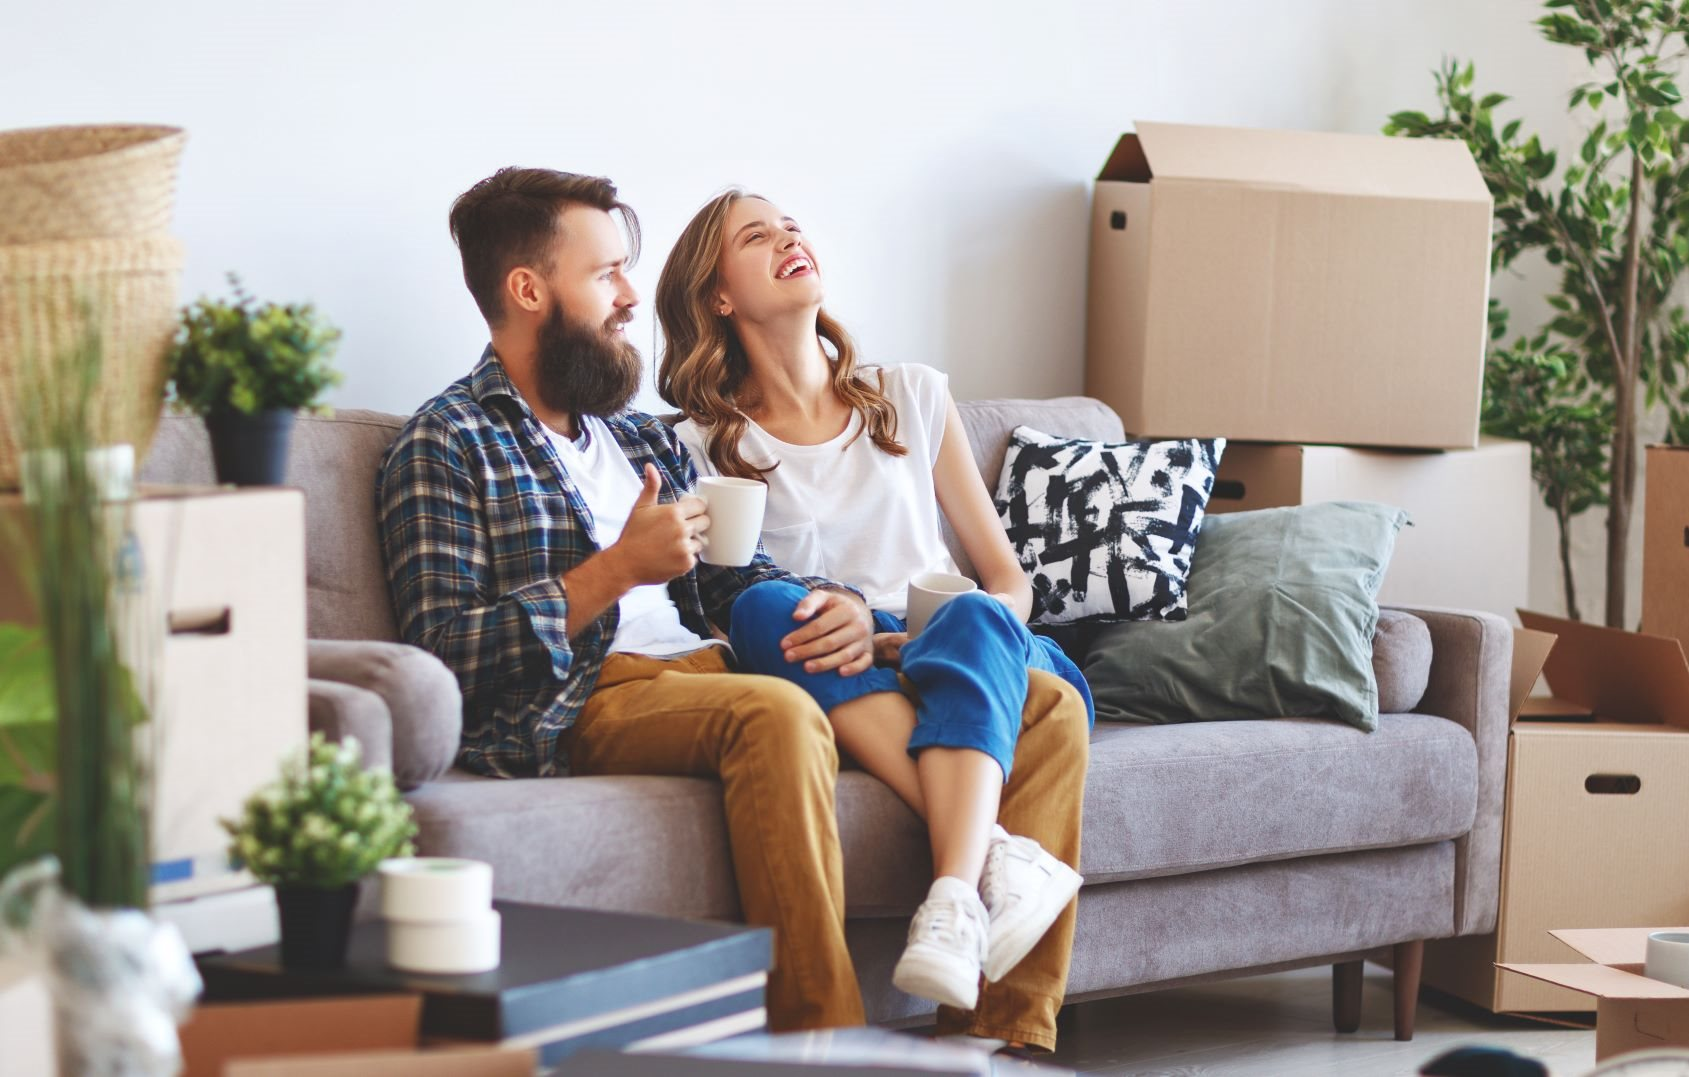 Two people on the couch with moving boxes around them